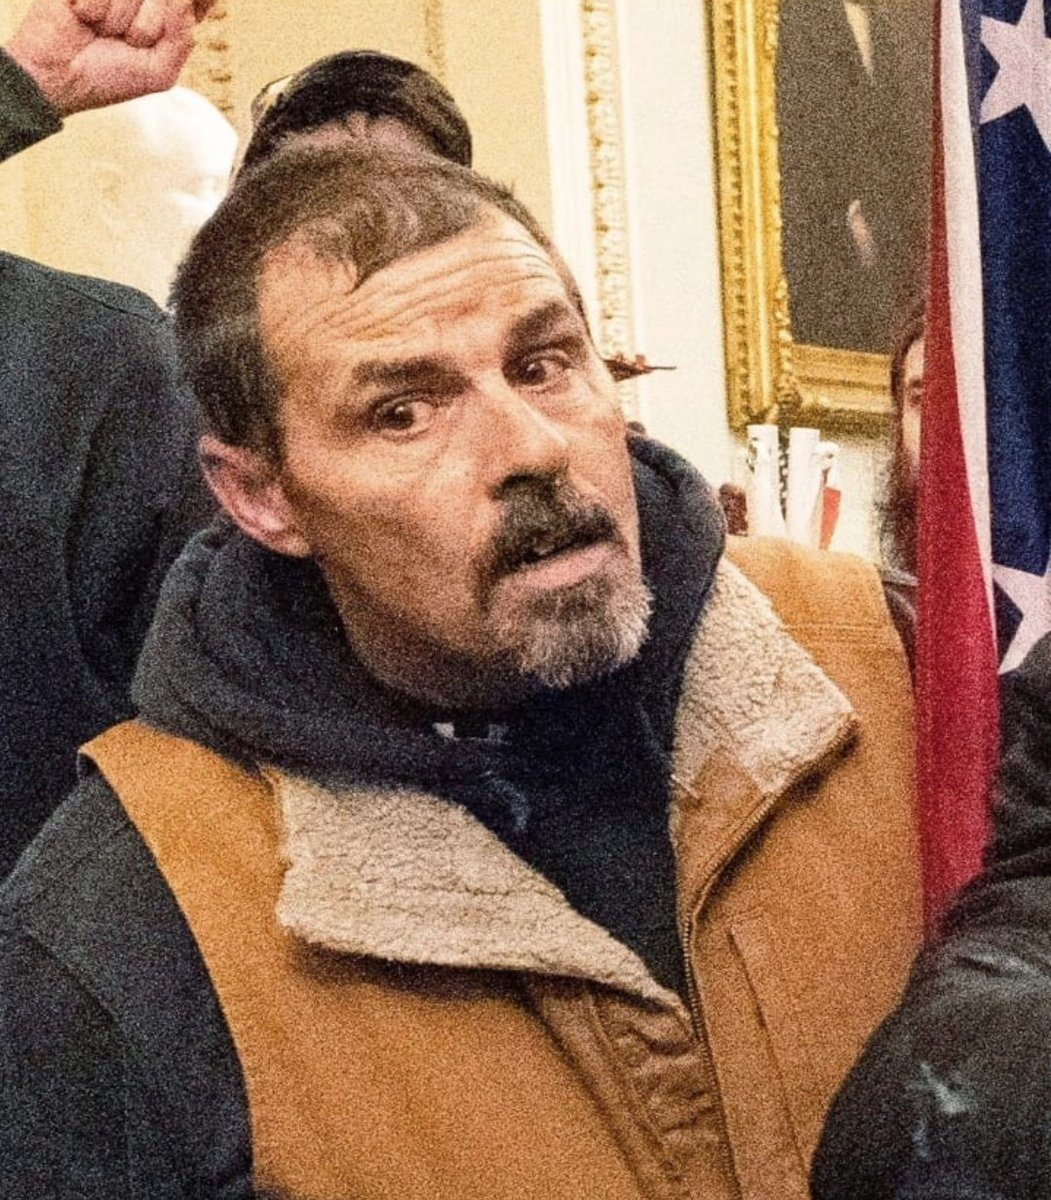 This is Kevin Seefried from Delaware. He is a registered Democrat who posed as a Trump supporter with a confederate flag that entered the Capitol on the 6th! The hijacking plot will be exposed 1 at a time. https://t.co/jkQanmojpV